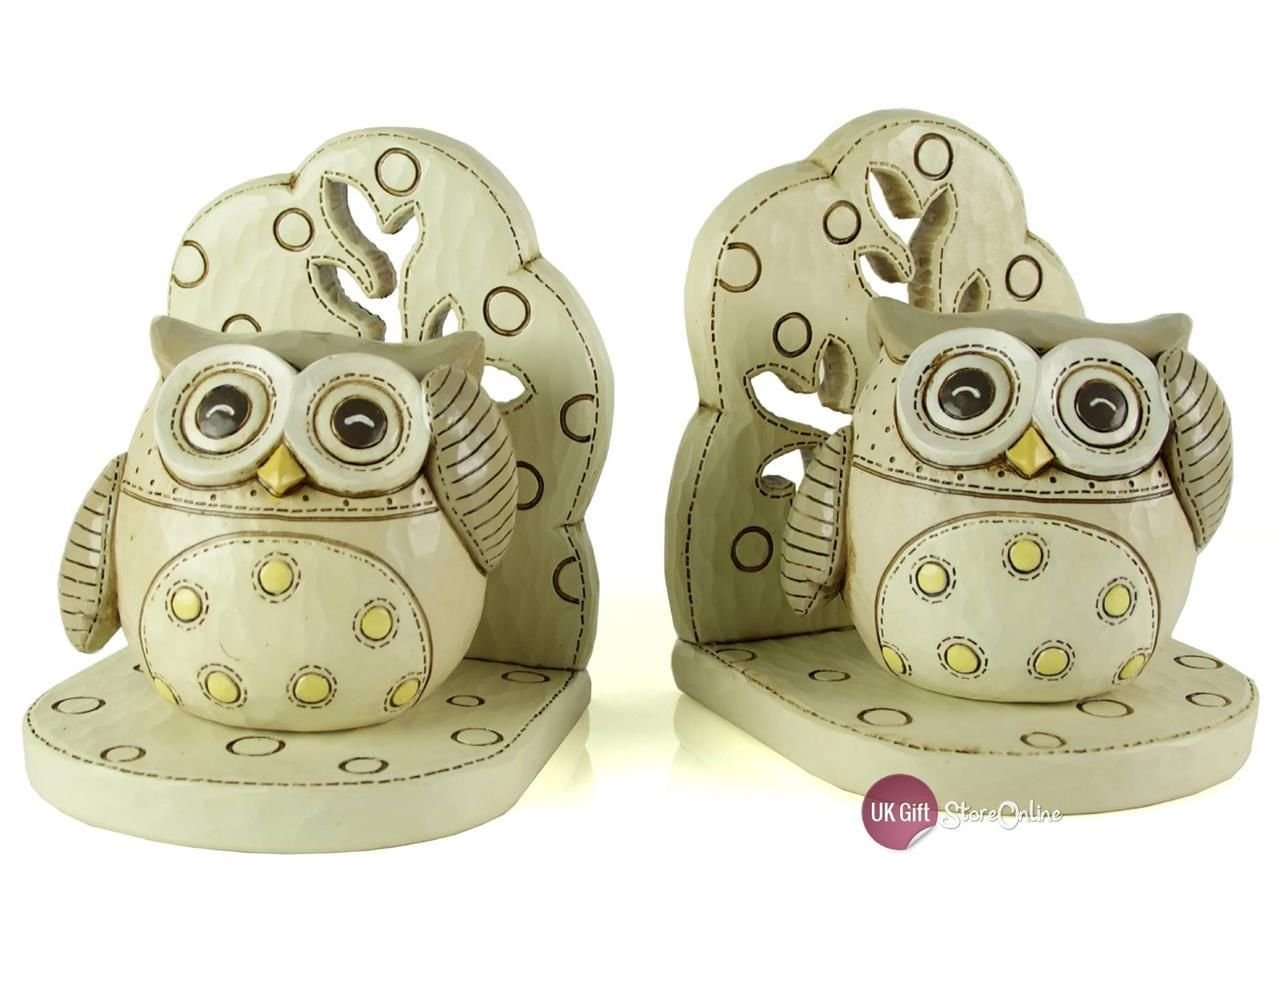 ukgiftstoreonline Baby or Nursery Owl Bookends CG395